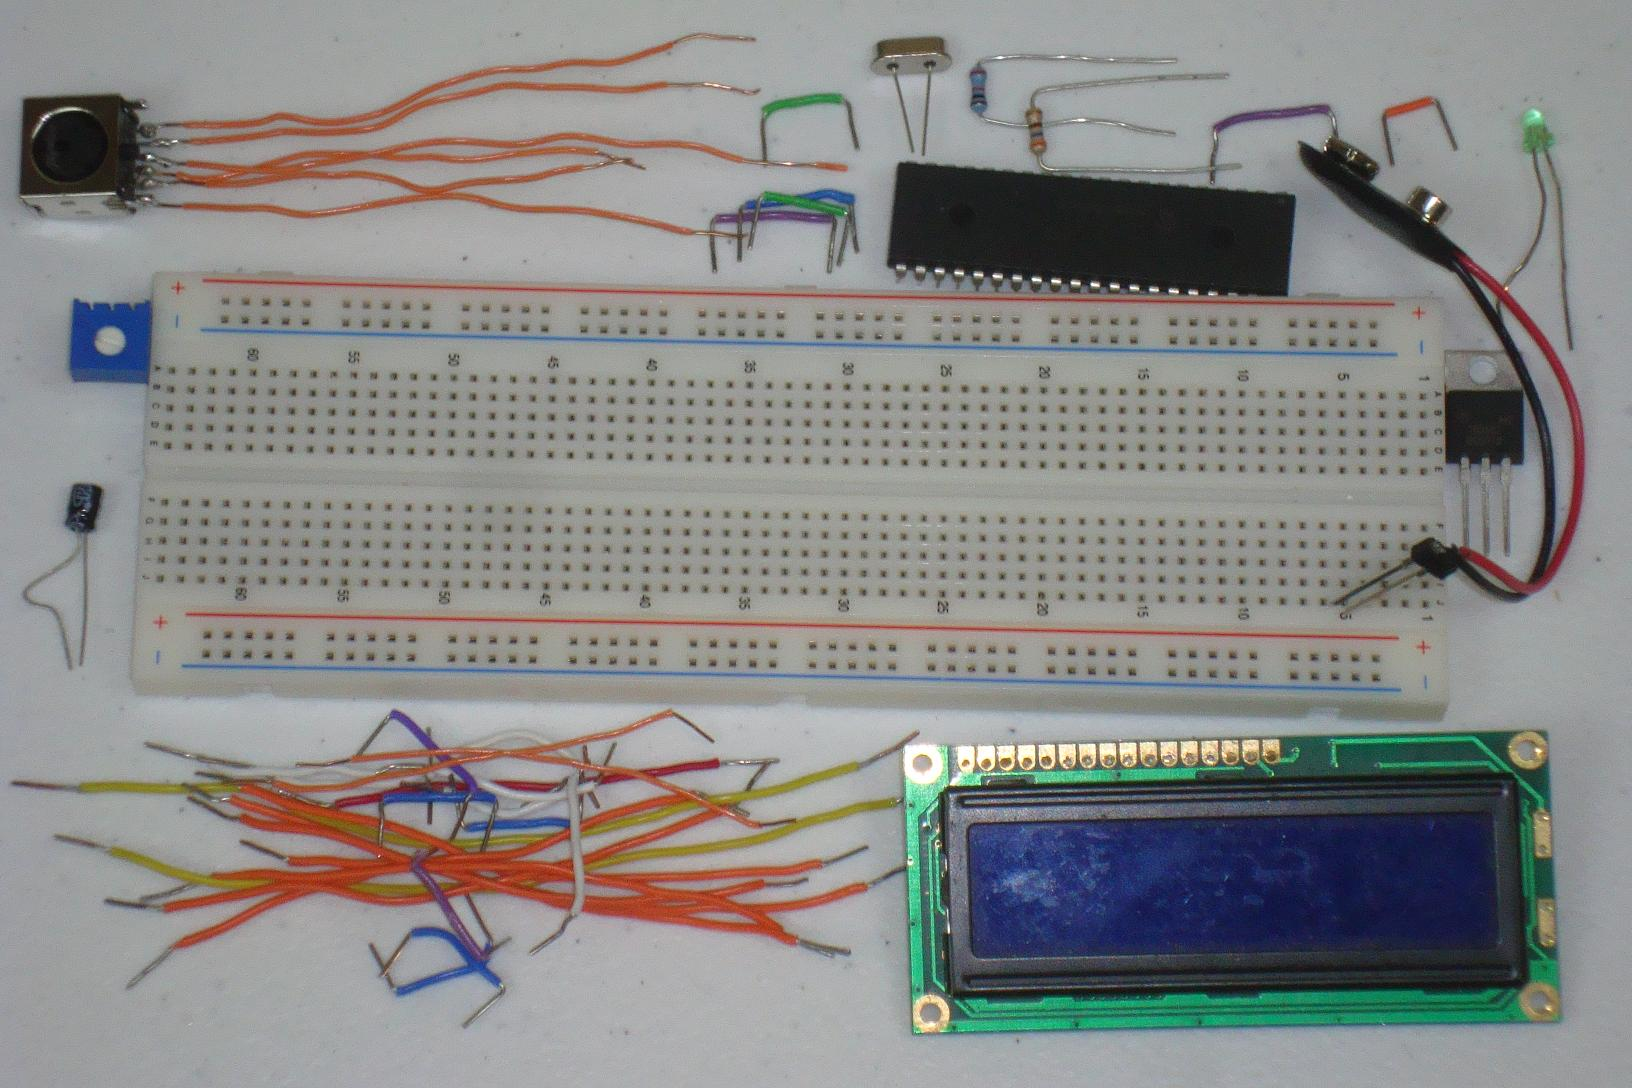 Ps 2 Keyboard To 16x2 Lcd Hardware Pyroelectro News Projects Building Your First Breadboard Circuit The Power Regulator Is Connected On